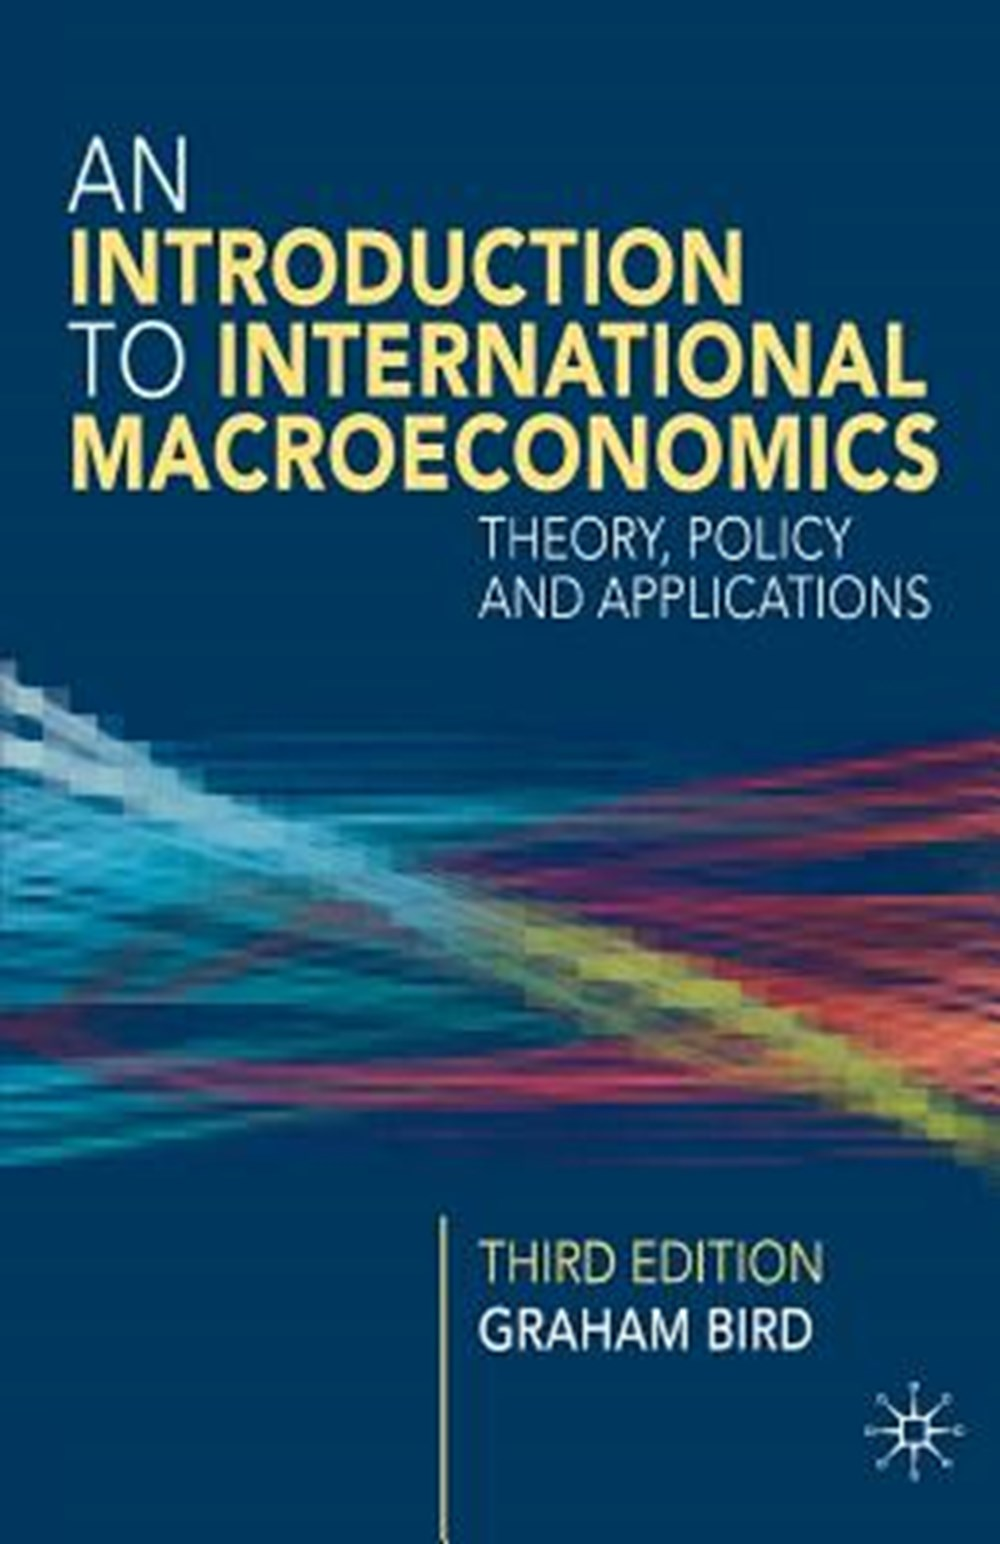 Introduction to International Macroeconomics A Primer on Theory, Policy and Applications